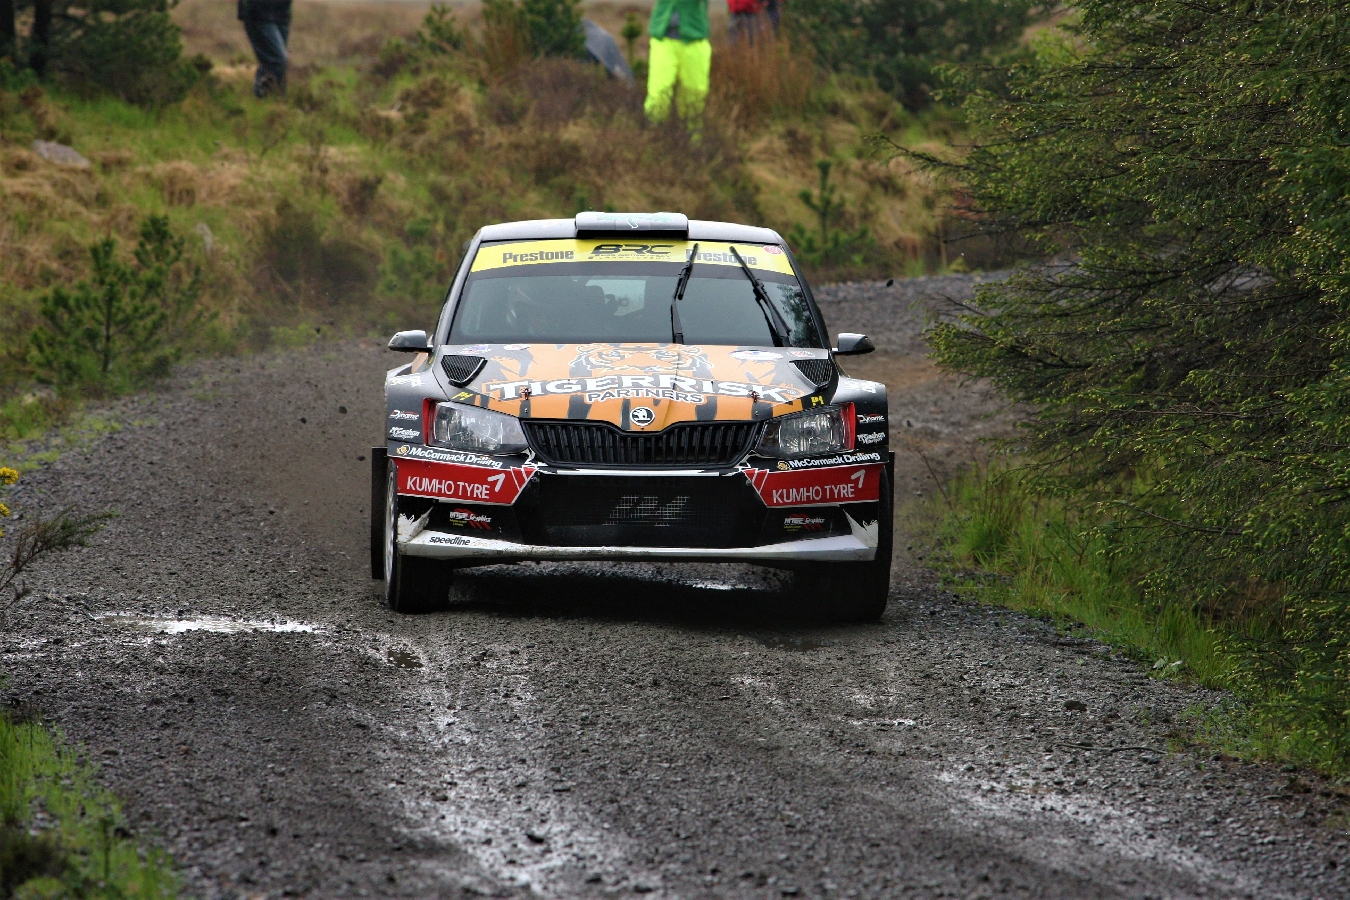 Marty Maximises in Donegal! 2017 Valvoline Motorsport Ireland National Forest Rally Championship - Round Three